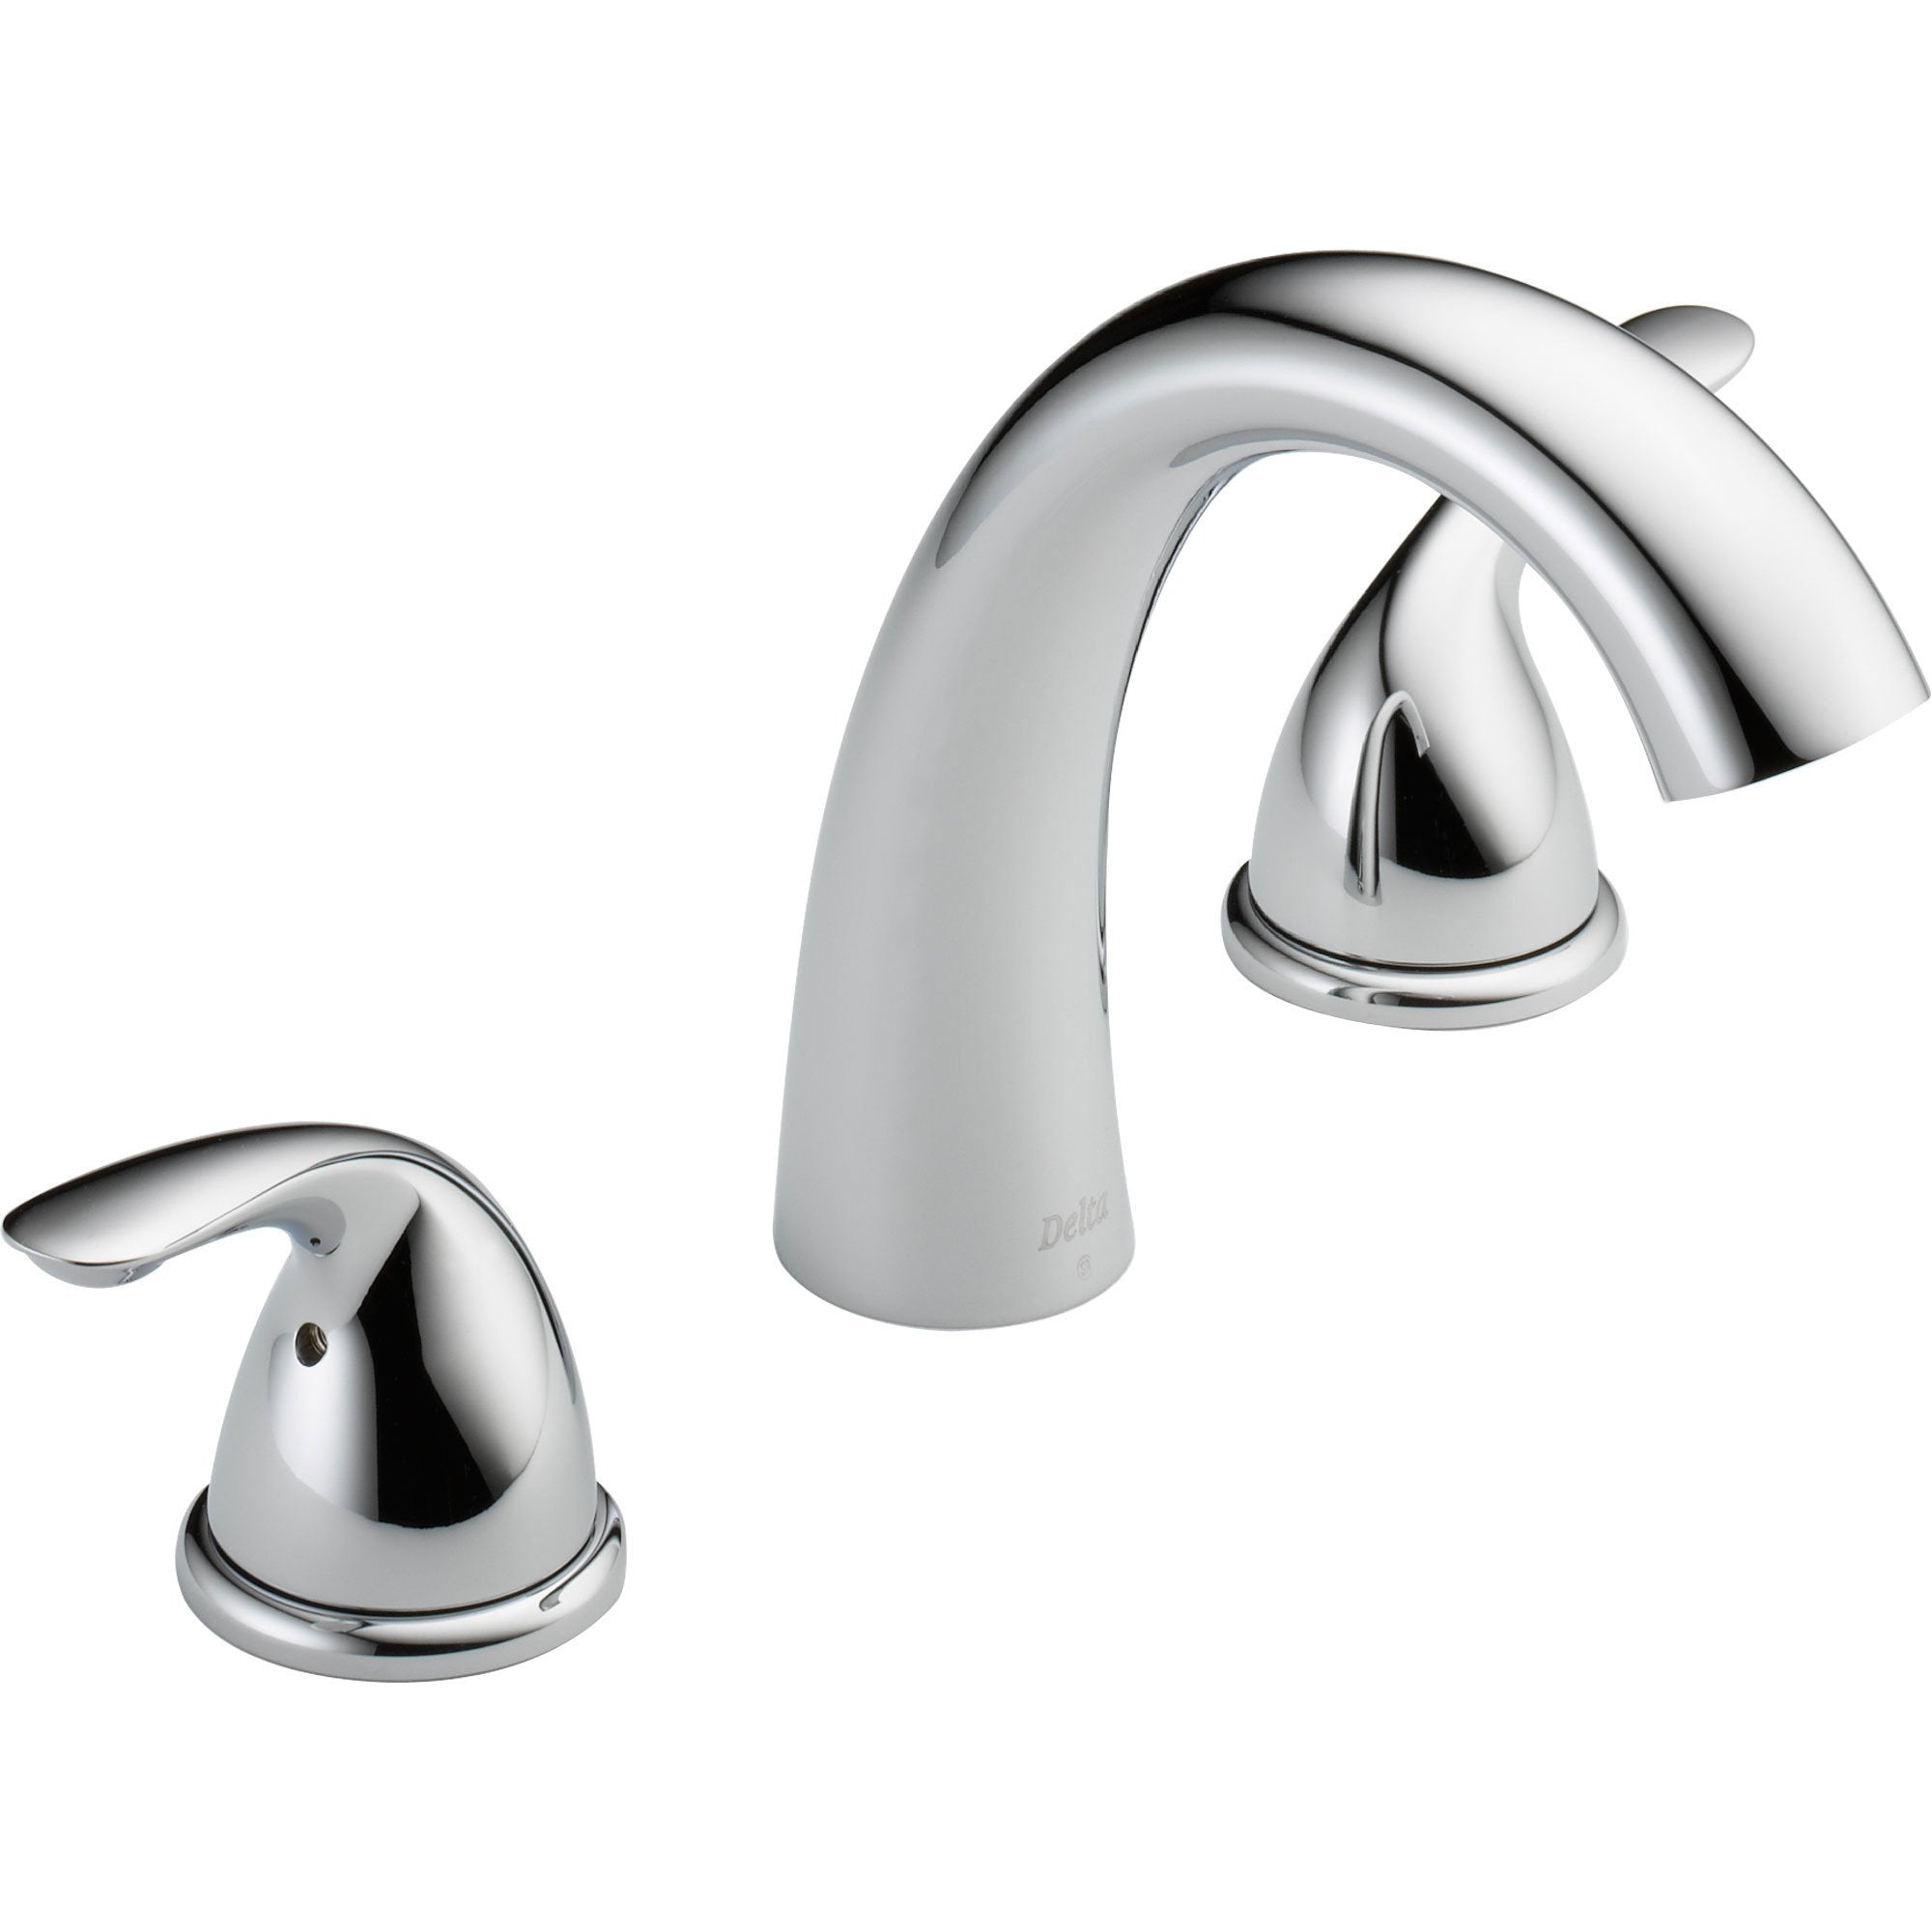 Delta Classic Kitchen Faucet Delta Classic 2 Handle Deck Mount Roman Tub Faucet Trim Only In